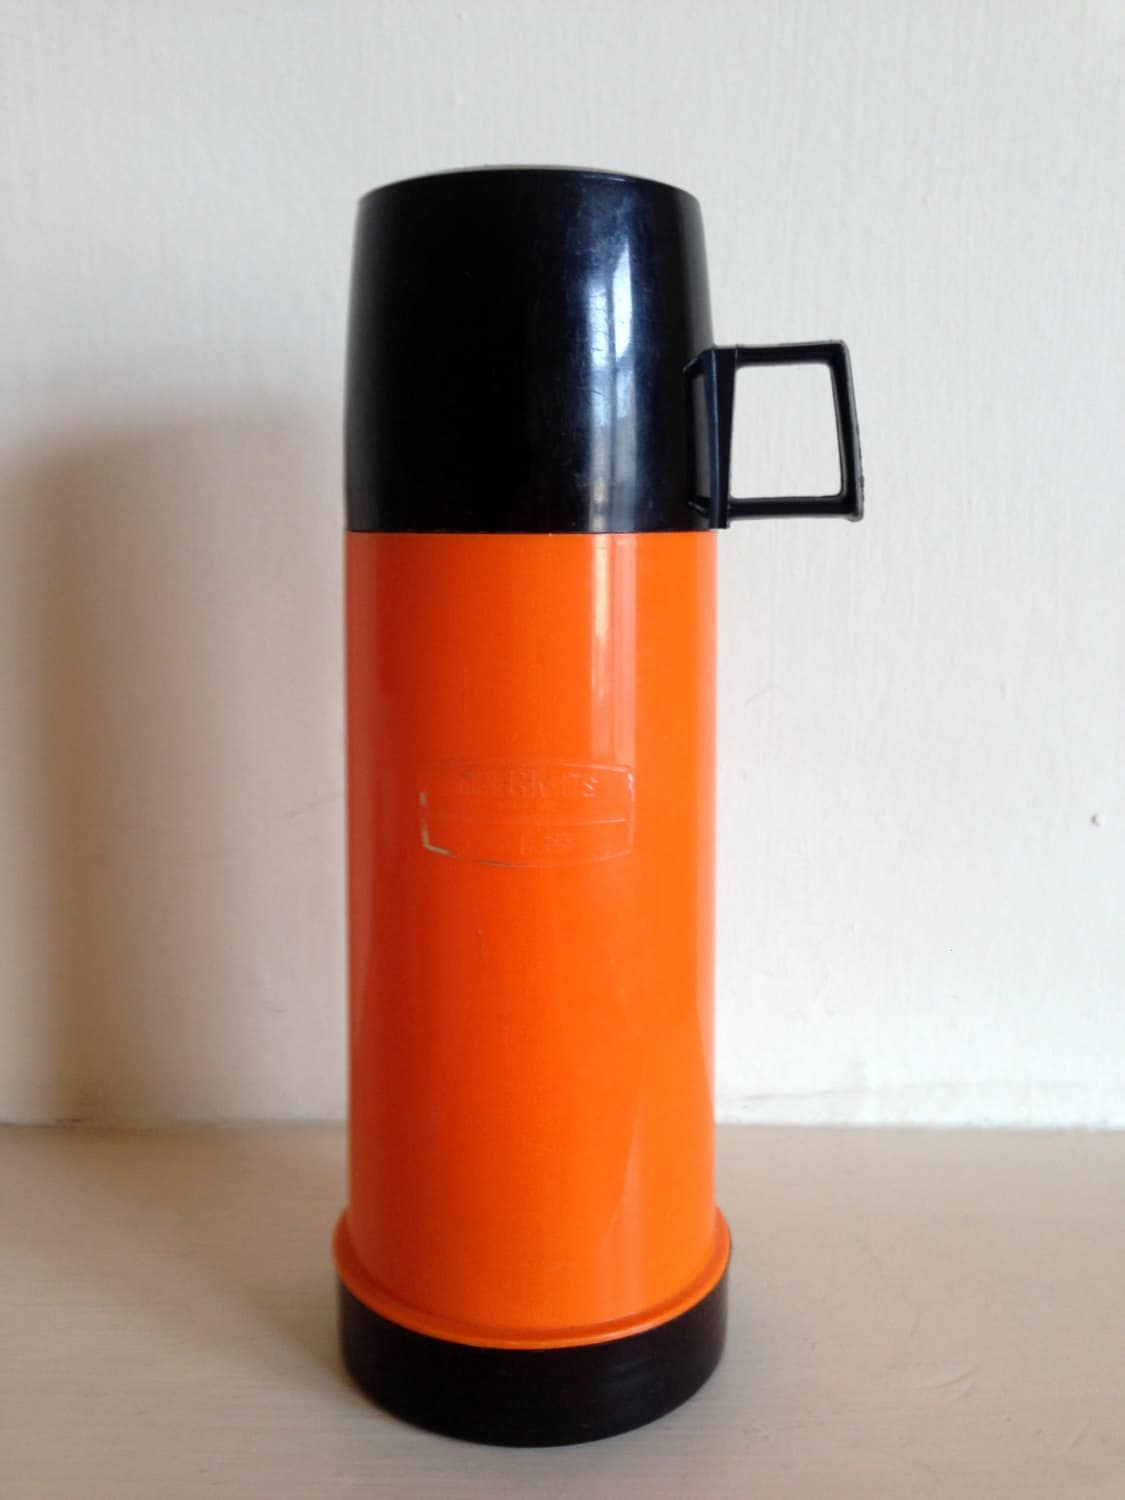 Vintage Bright Orange Thermos Flask 1 Litre Size Made In